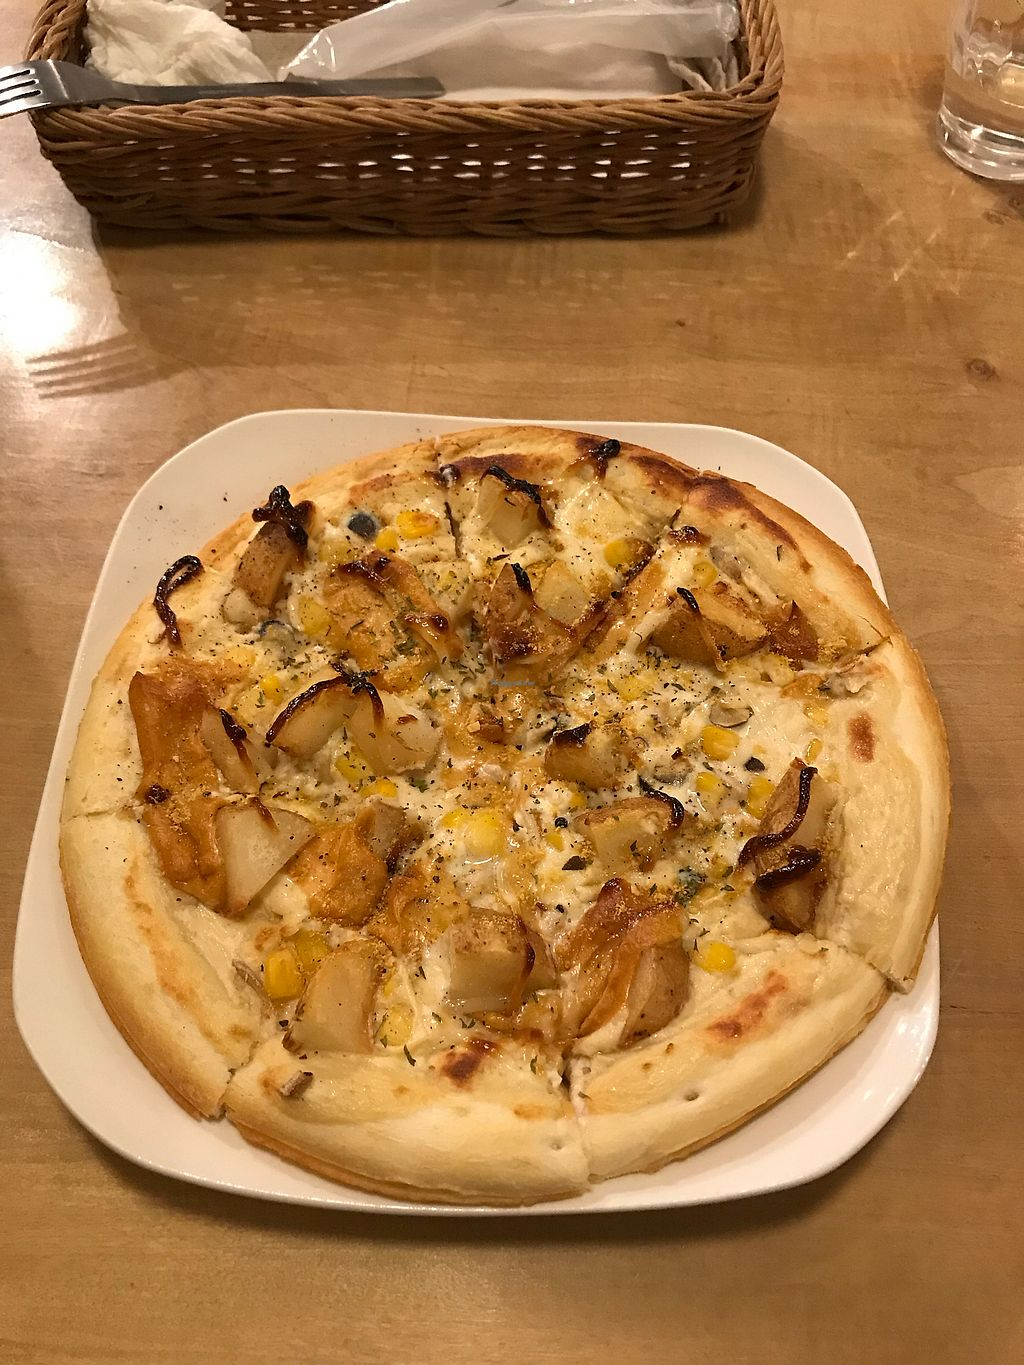 """Photo of Morpho Cafe  by <a href=""""/members/profile/Whiteeve"""">Whiteeve</a> <br/>Potato Pizza <br/> November 23, 2017  - <a href='/contact/abuse/image/32107/328312'>Report</a>"""